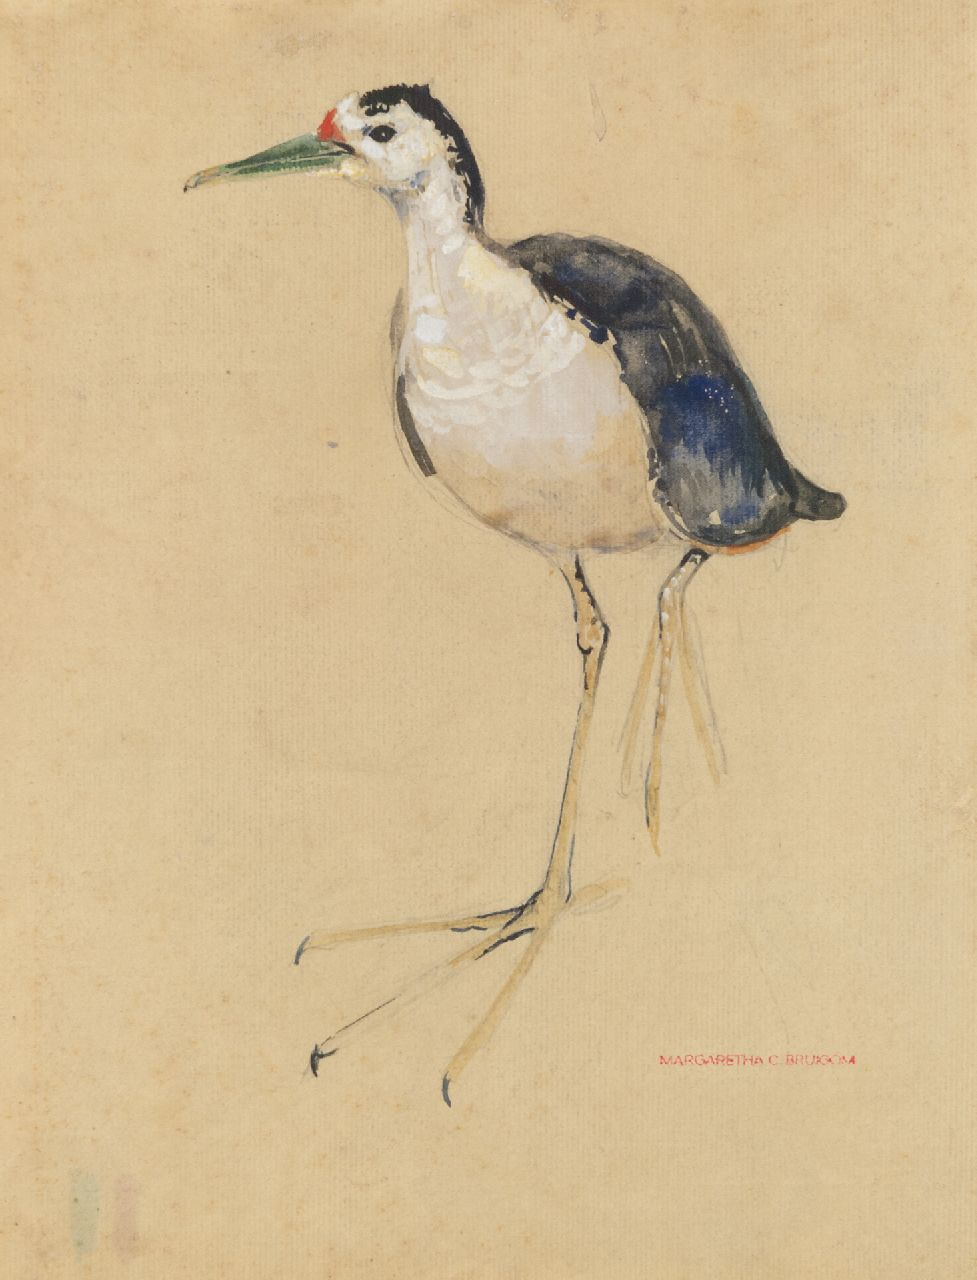 Bruigom M.C.  | Margaretha Cornelia 'Greta' Bruigom | Watercolours and drawings offered for sale | A wader, watercolour on paper 31.3 x 24.6 cm, signed l.r. with the artists stamp